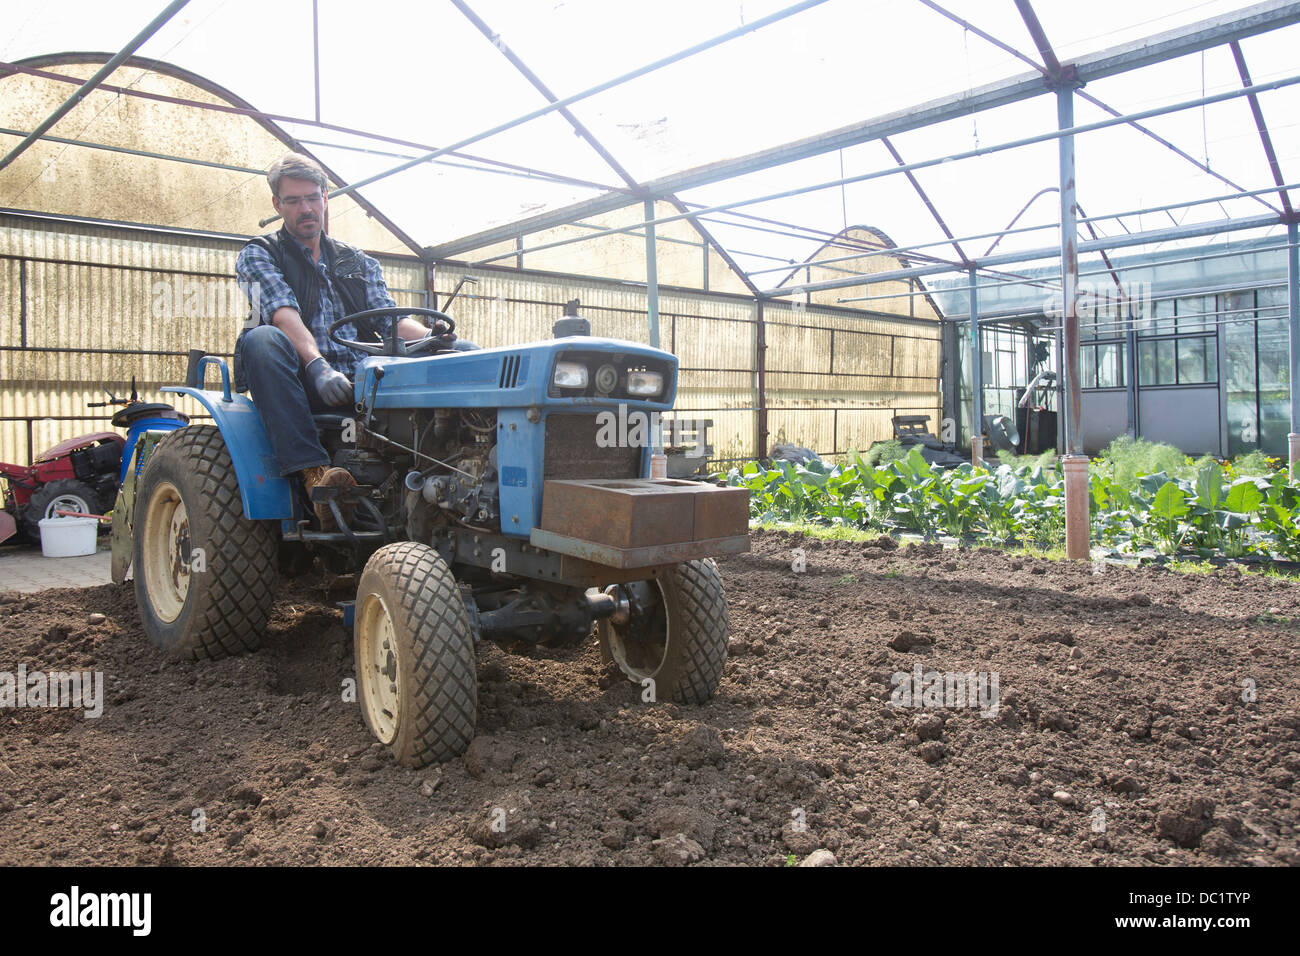 Organic farmer on tractor maintaining soil in polytunnel - Stock Image